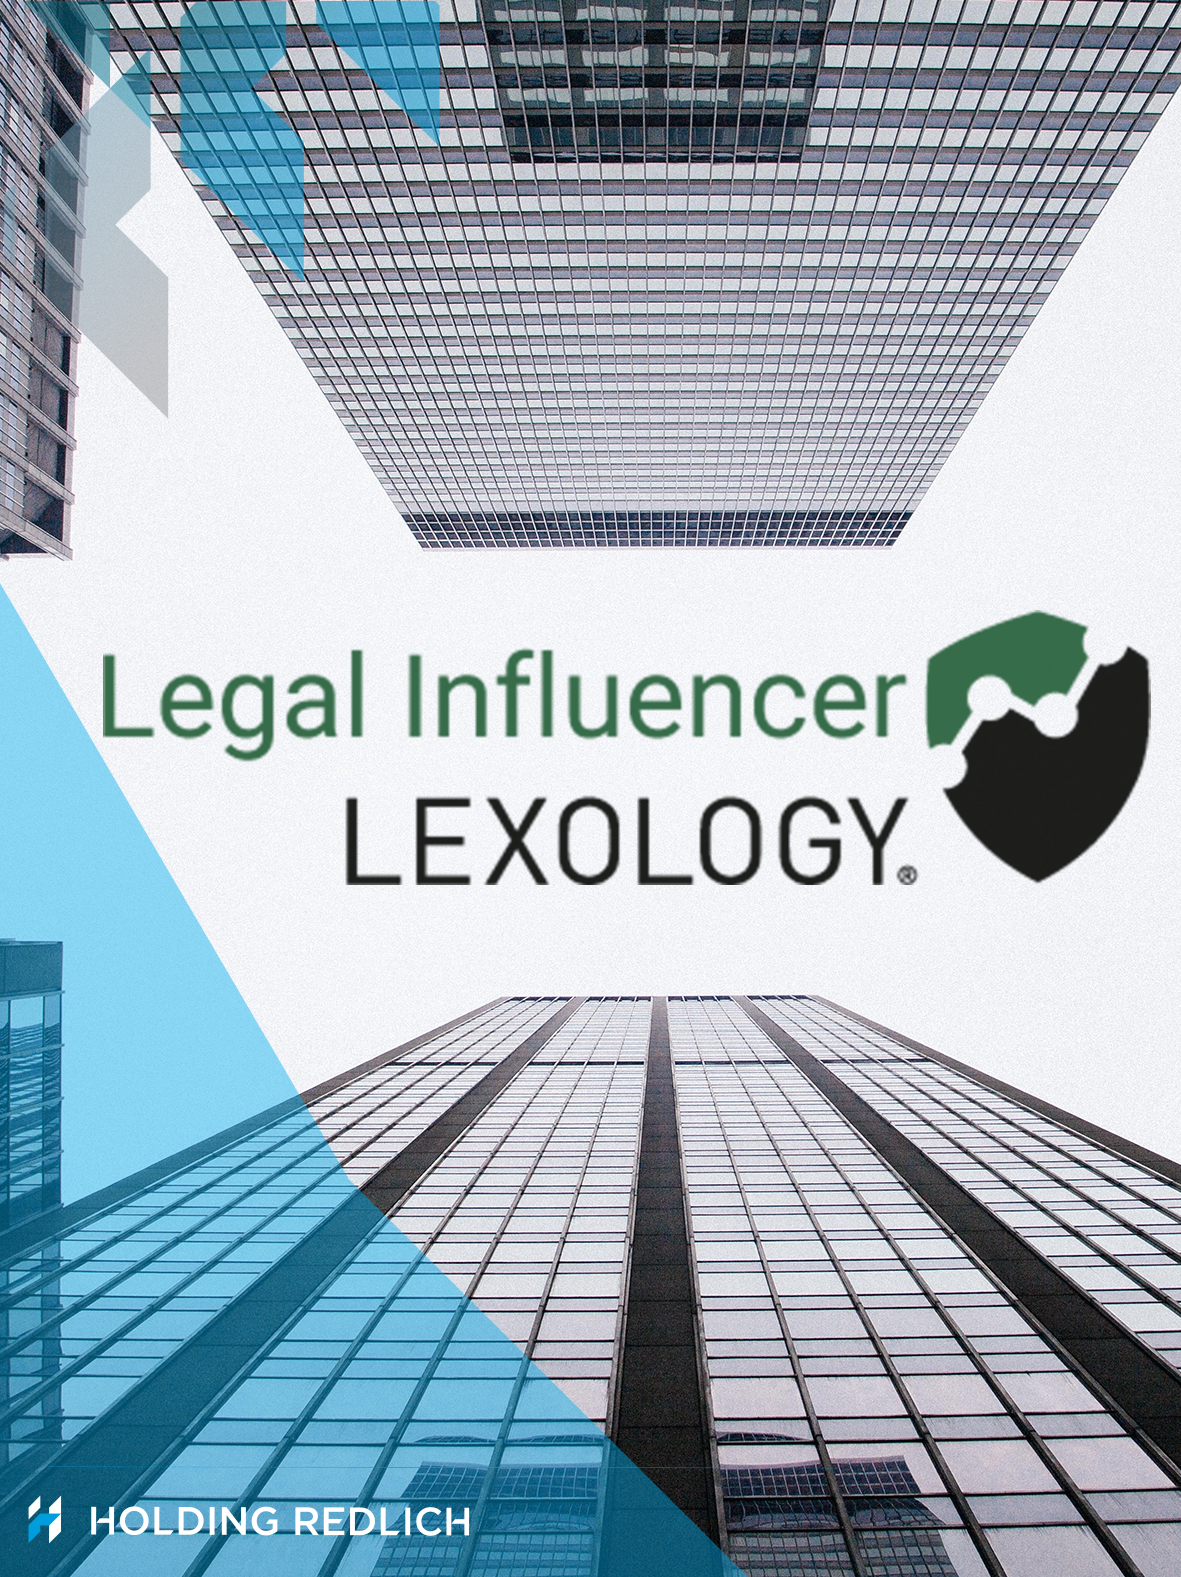 Holding Redlich recognised as a Legal Influencer by Lexology